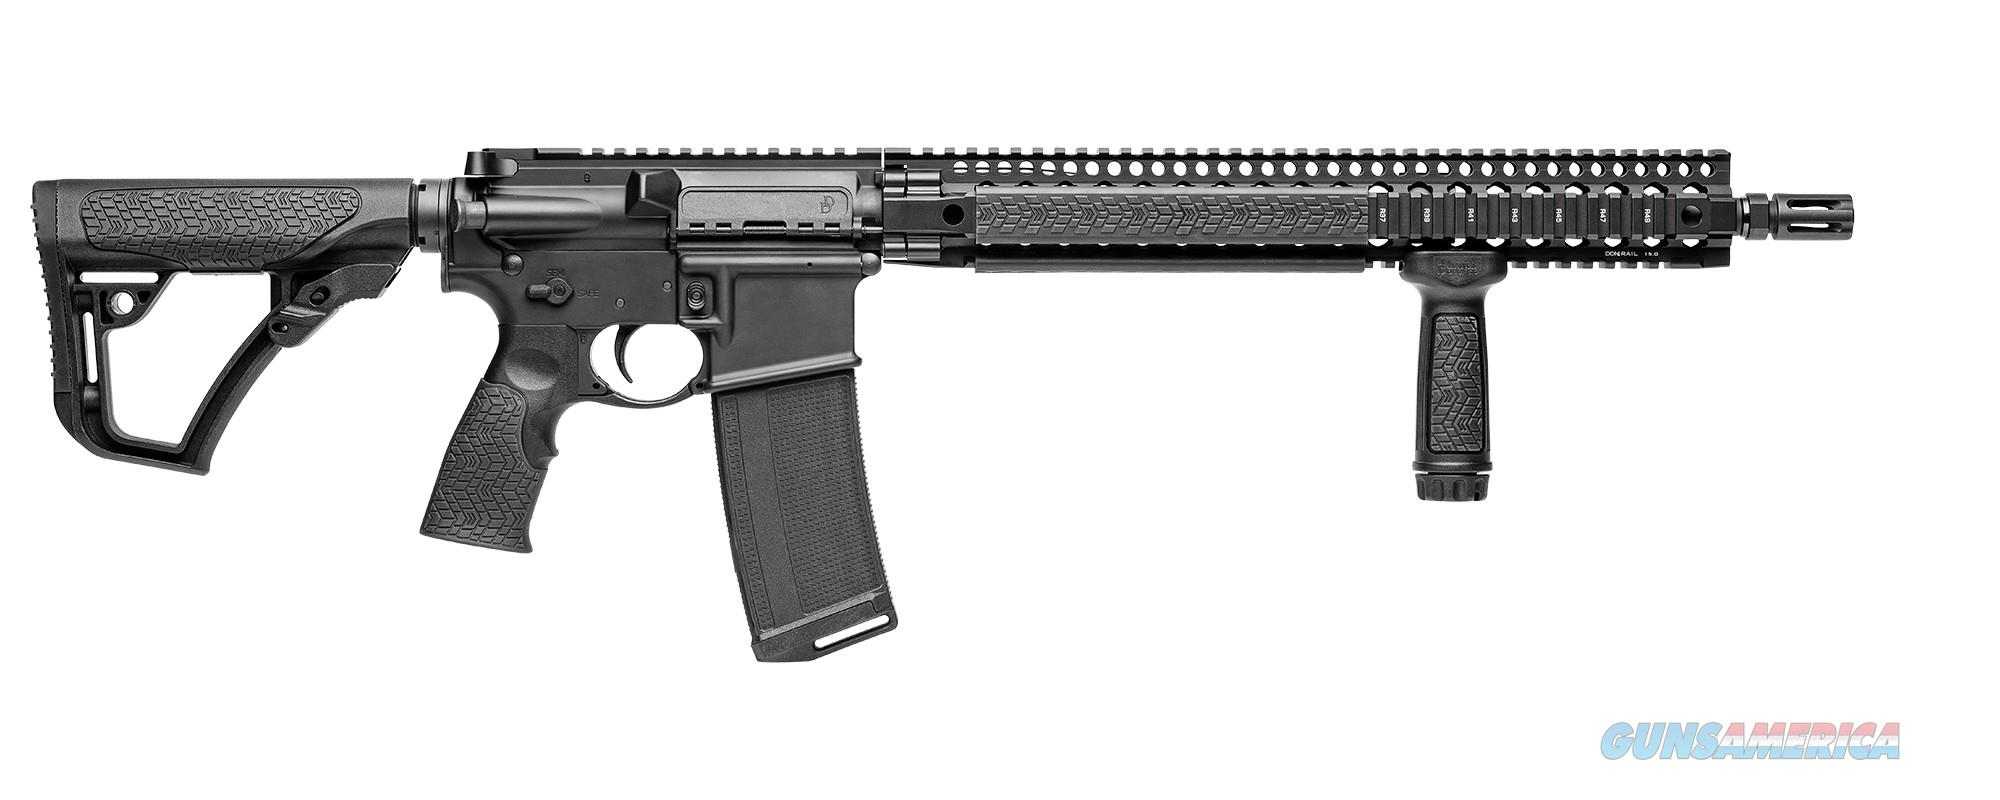 DANIEL DEFENSE V9 lw  Guns > Rifles > Daniel Defense > Complete Rifles